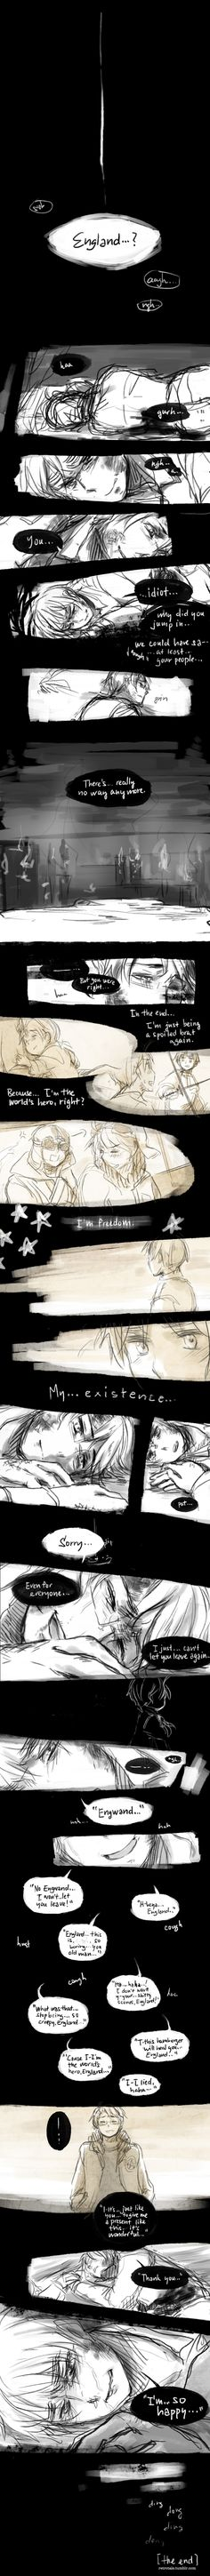 i've always hated seeing you leave, you know by ~Crystalicia on deviantART